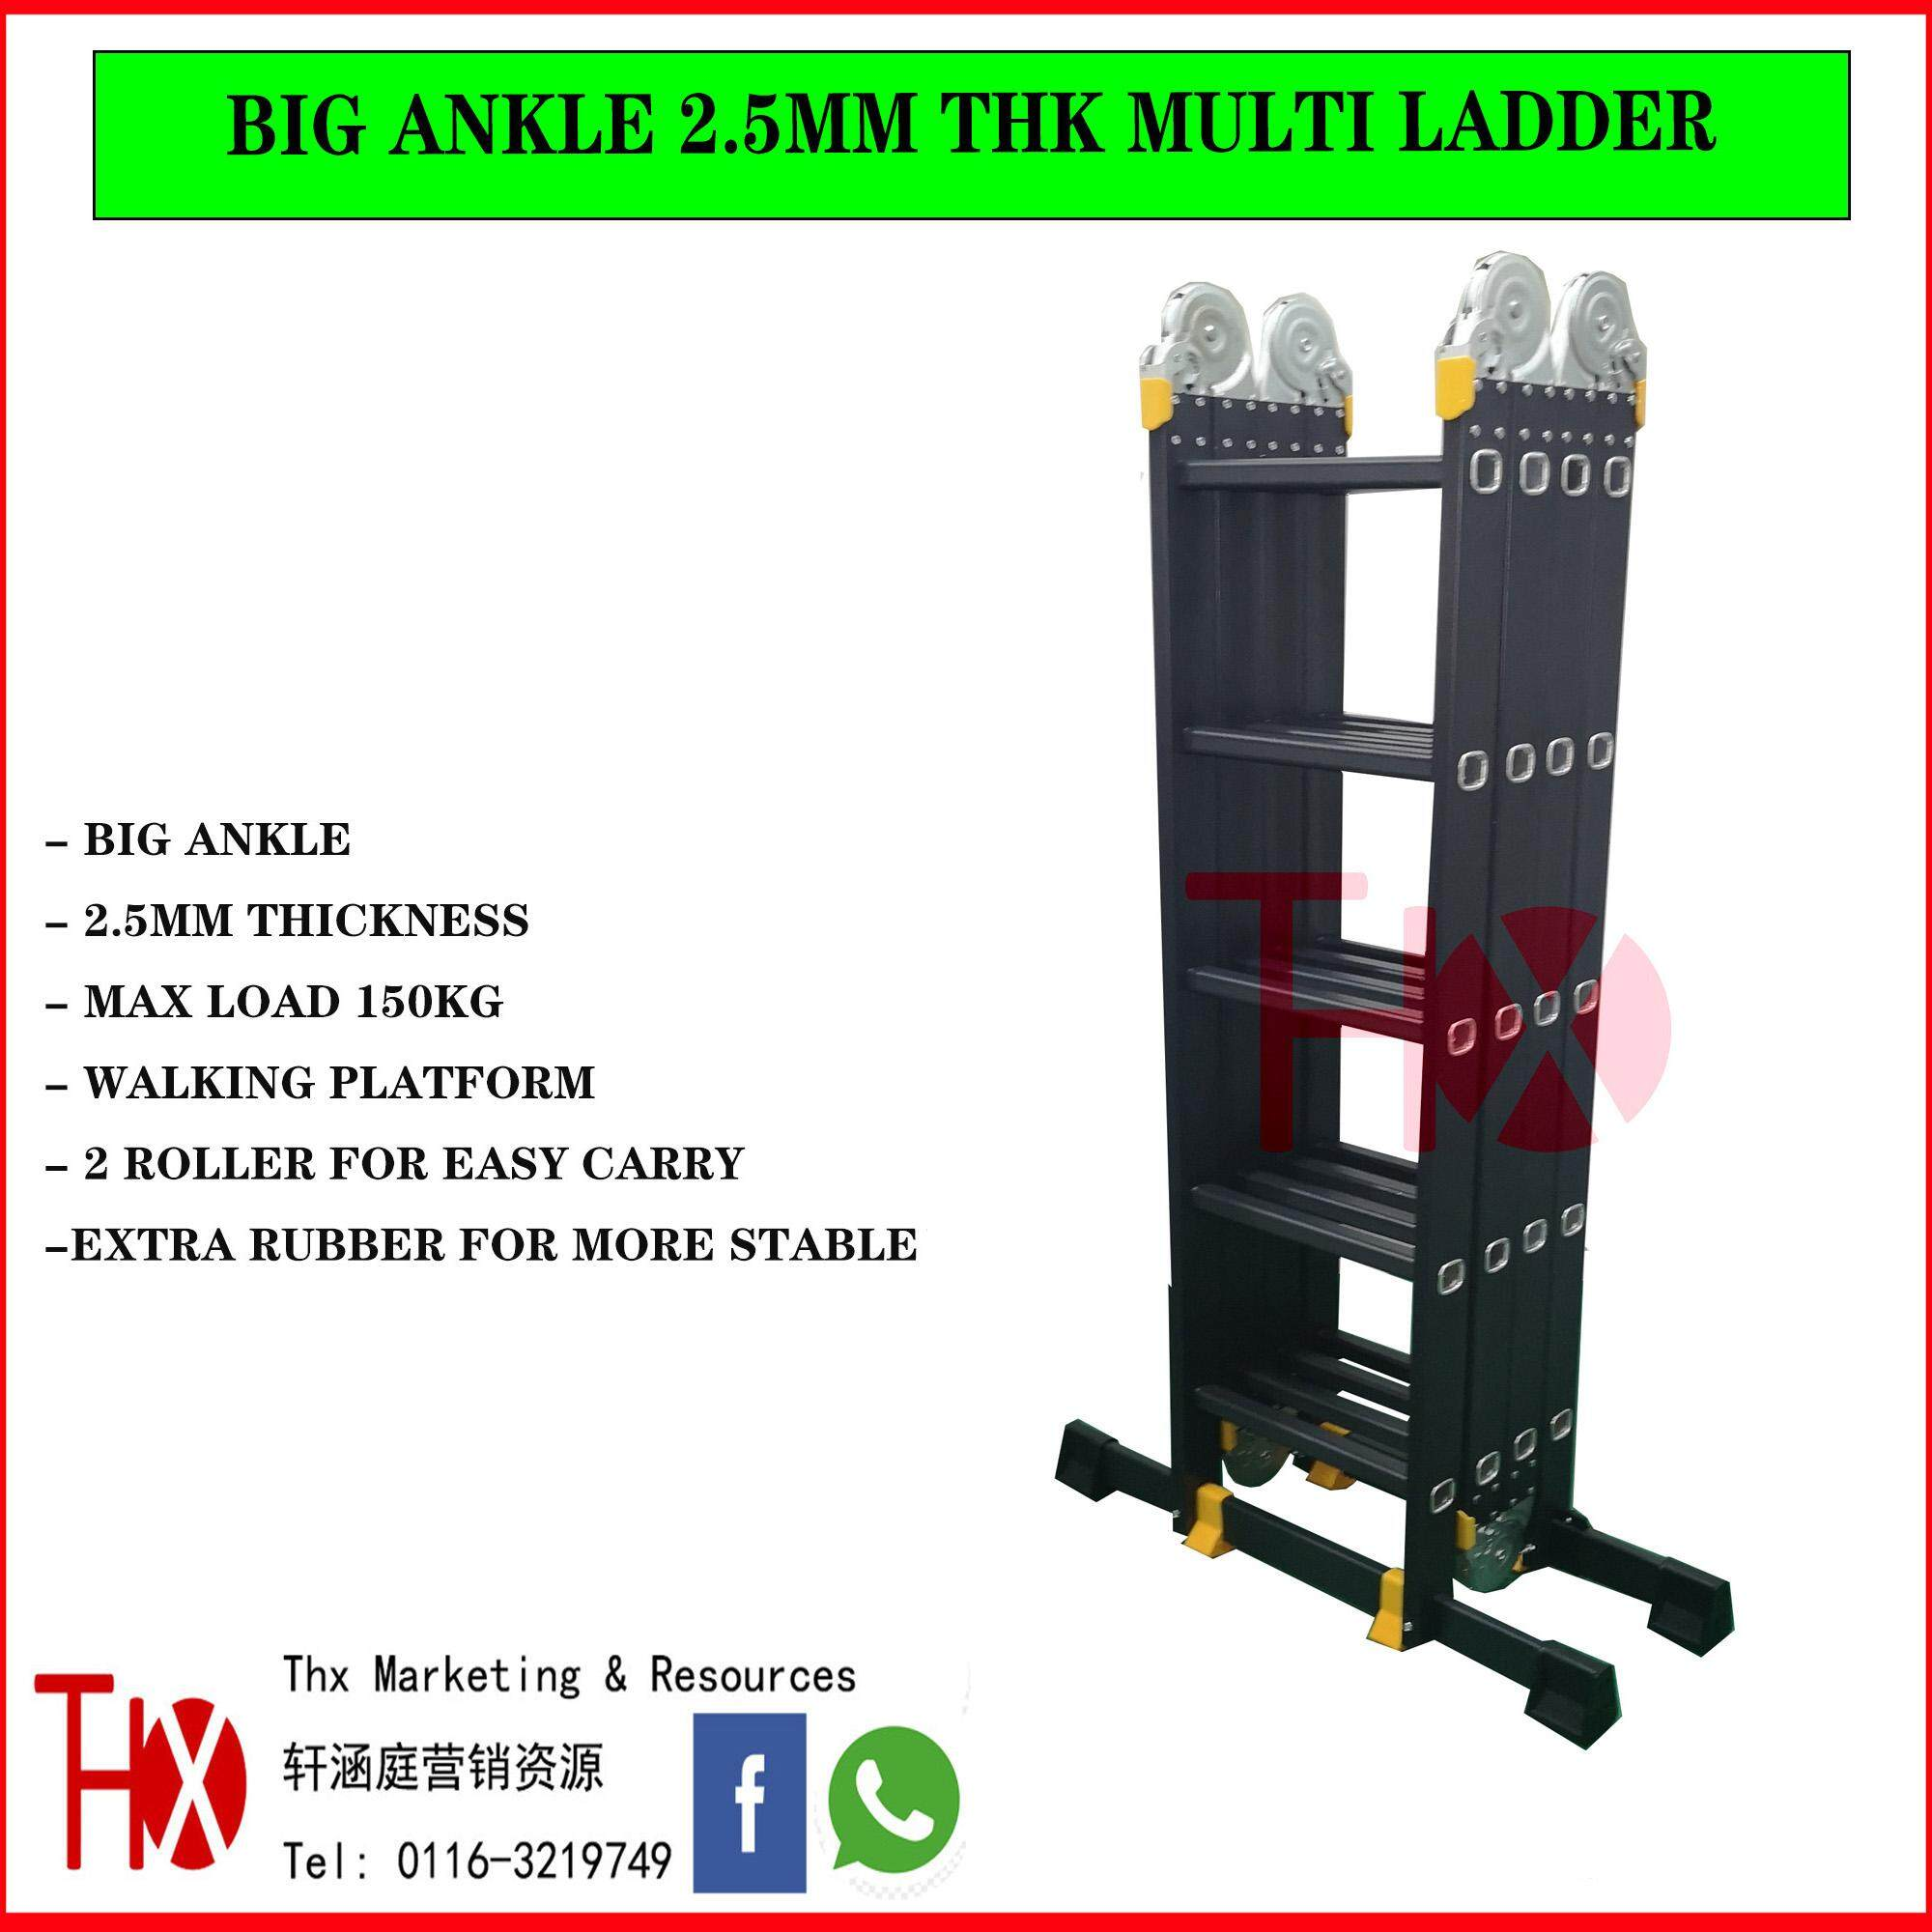 20Ft Extra Heavy Duty Multi Purpose Ladder With Walking Platform 2.5mm Thickness